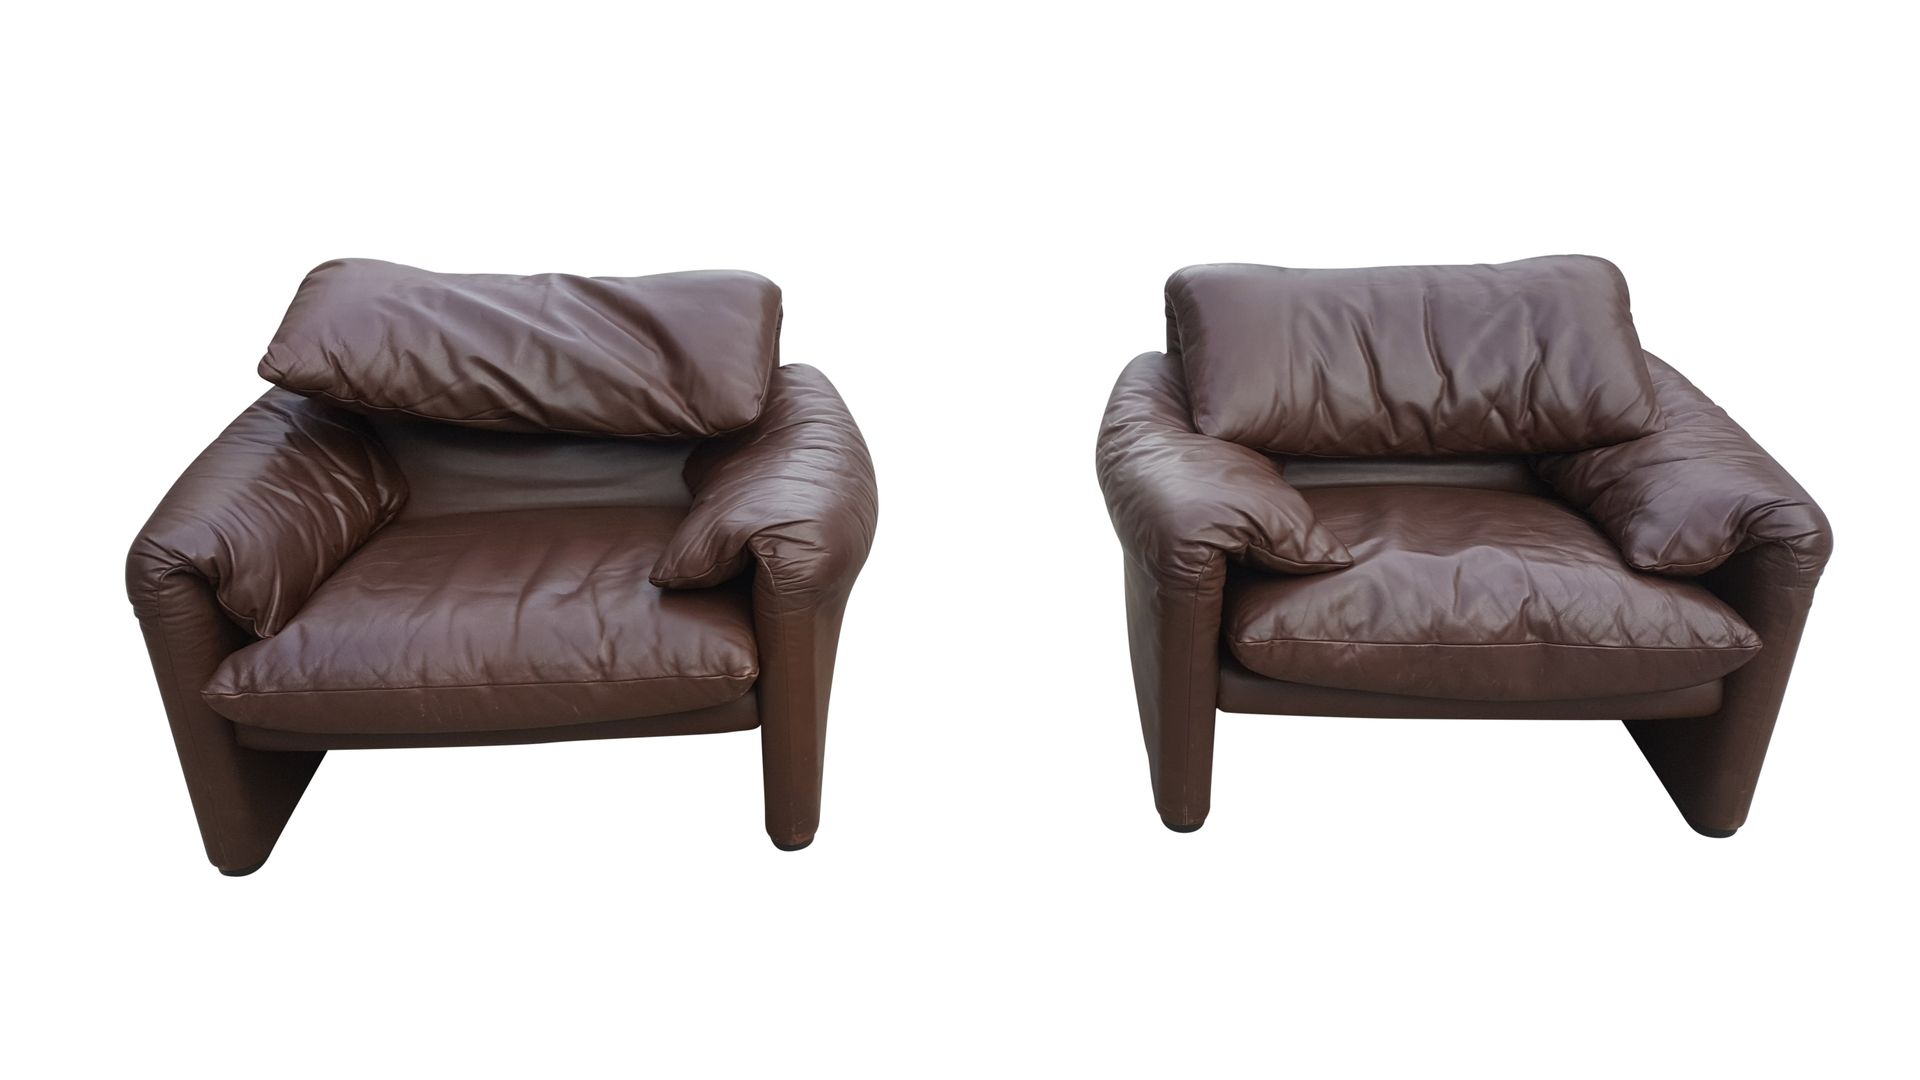 Chocolate Brown Living Room Set by Vico Magistretti for Cassina ...